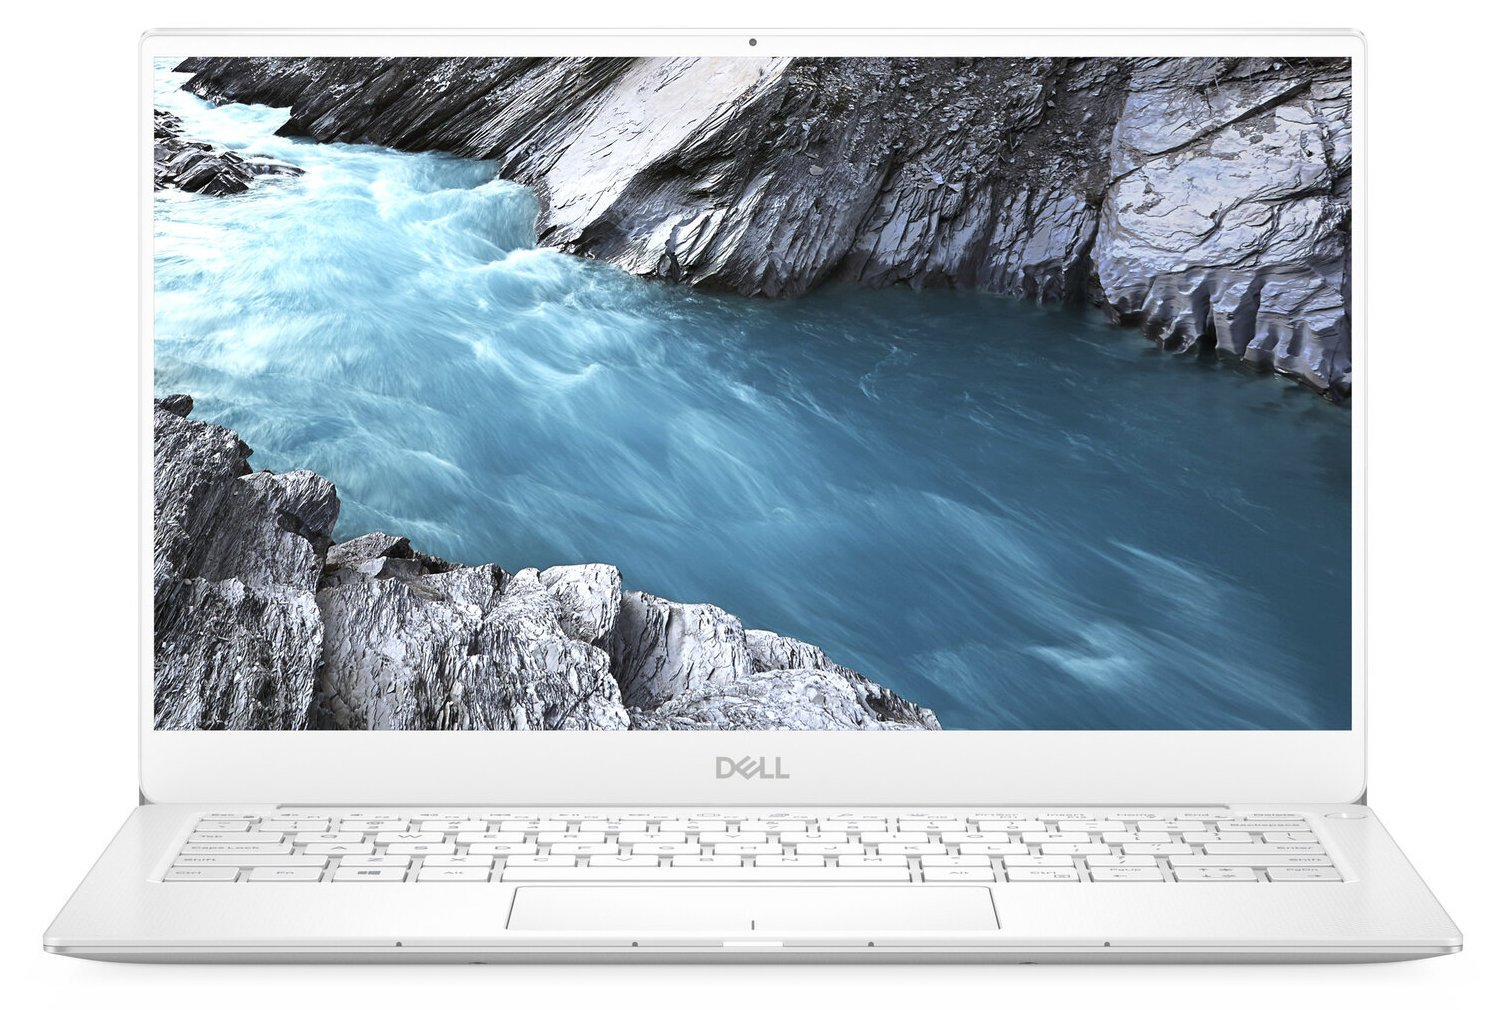 Dell Xps 13 9380 Another Exquisite Xps